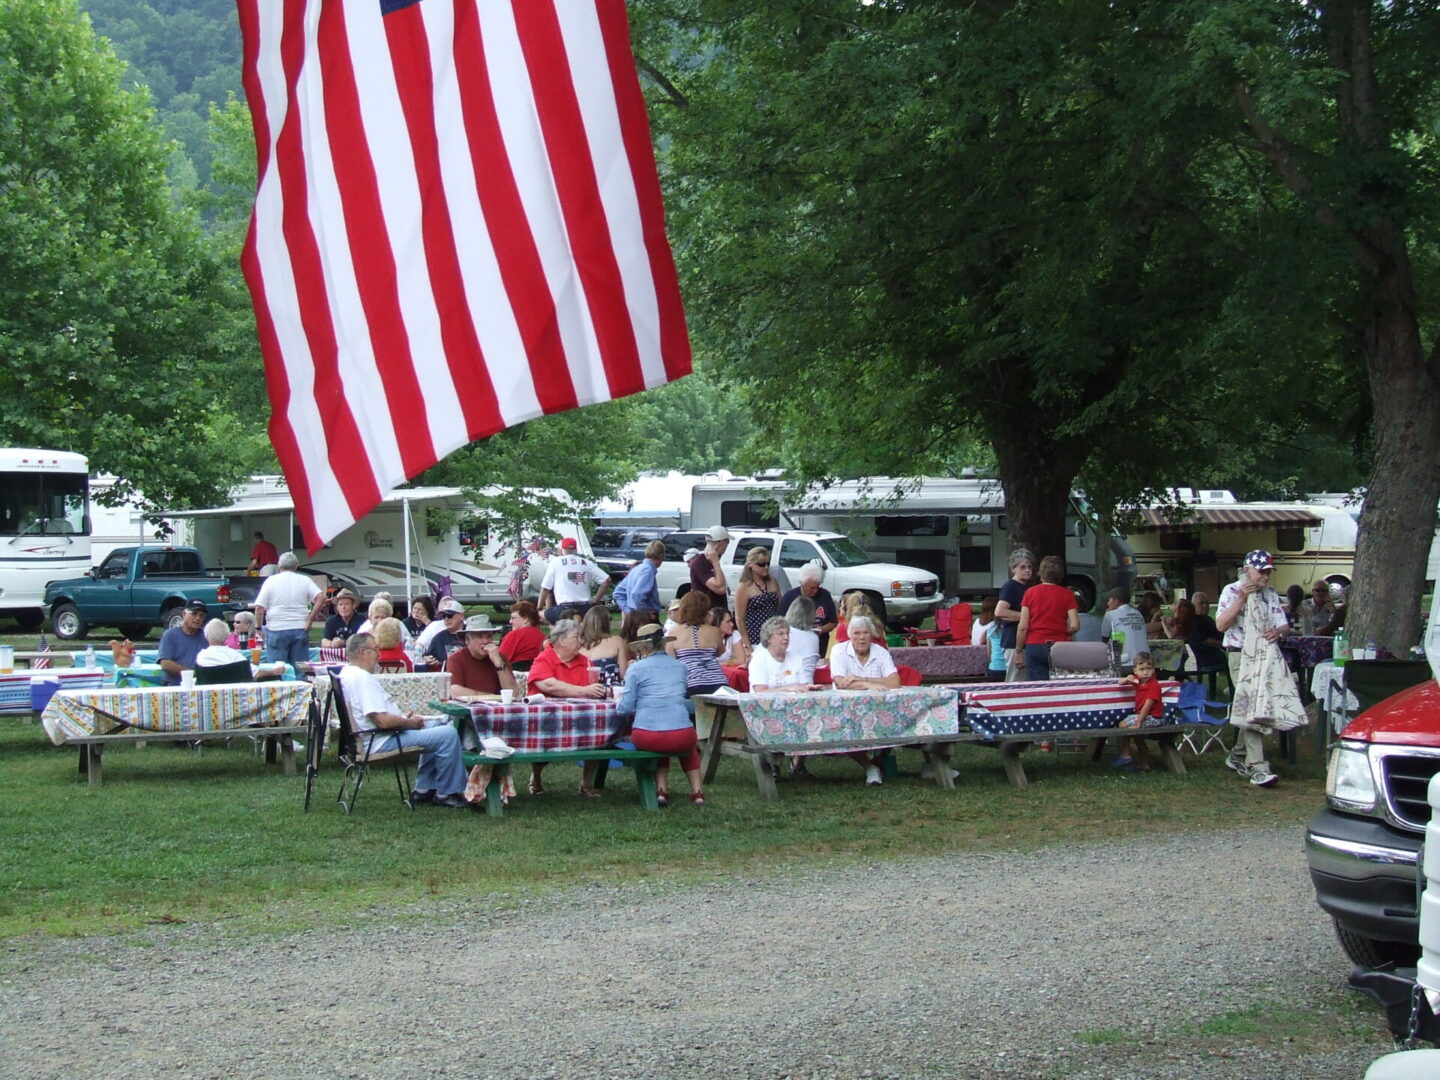 People gathered around on tables in a trailer park